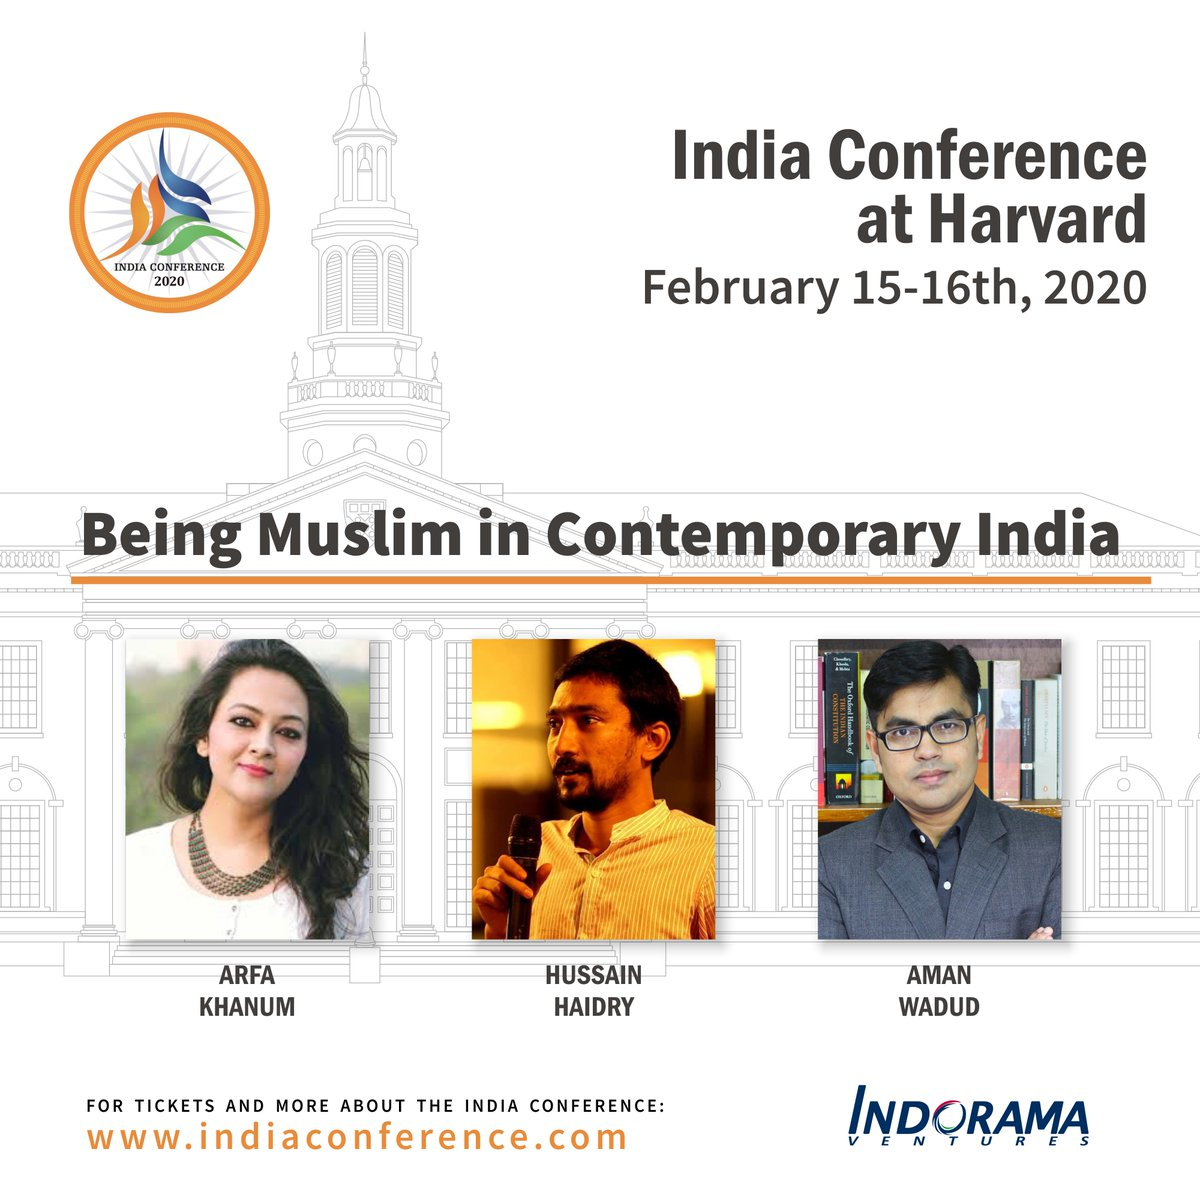 Hear @khanumarfa,  @AmanWadud & @hussainhaidry speak about experiences & outlook of Muslim communities in contemporary India at #IndiaConference2020 at Harvard.Republic Day SaleGet your tickets now: http://bit.ly/33tS7aNat 20% Off with code RDAY20. Offer lasts till 26 Jan!